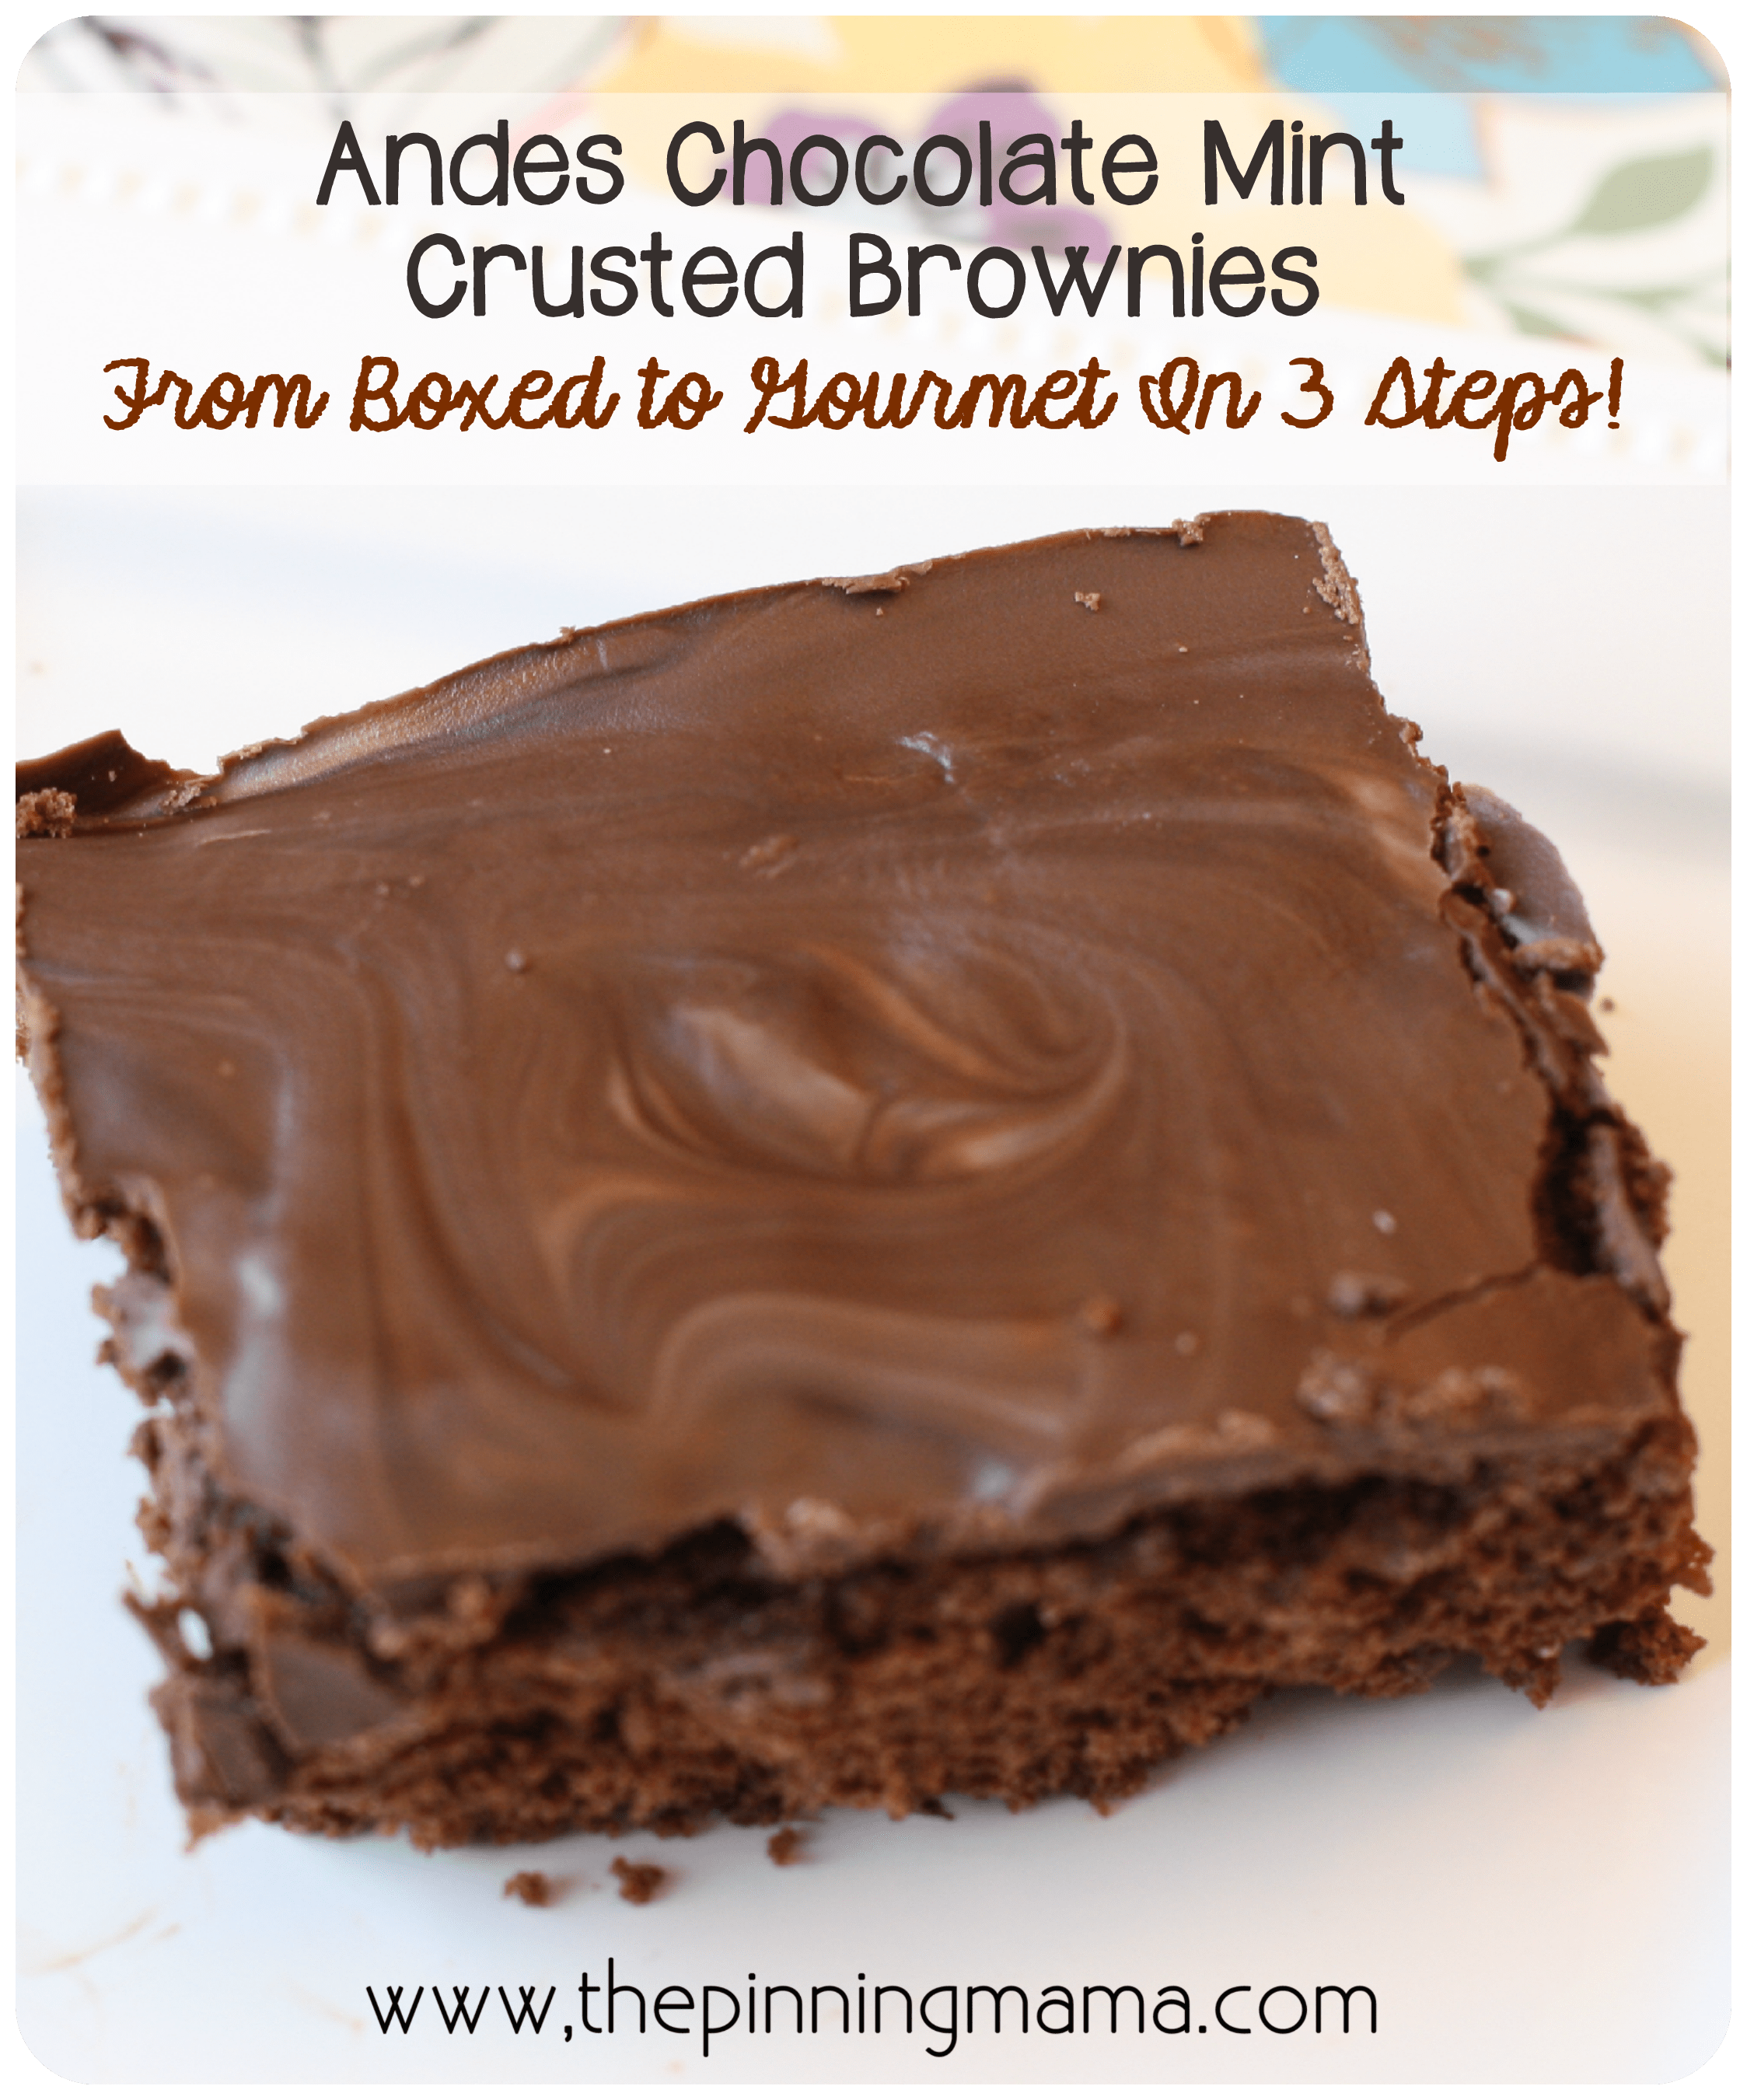 Brownies: From Boxed to Gourmet in 3 Easy Steps or Less! by www.thepinningmama.com